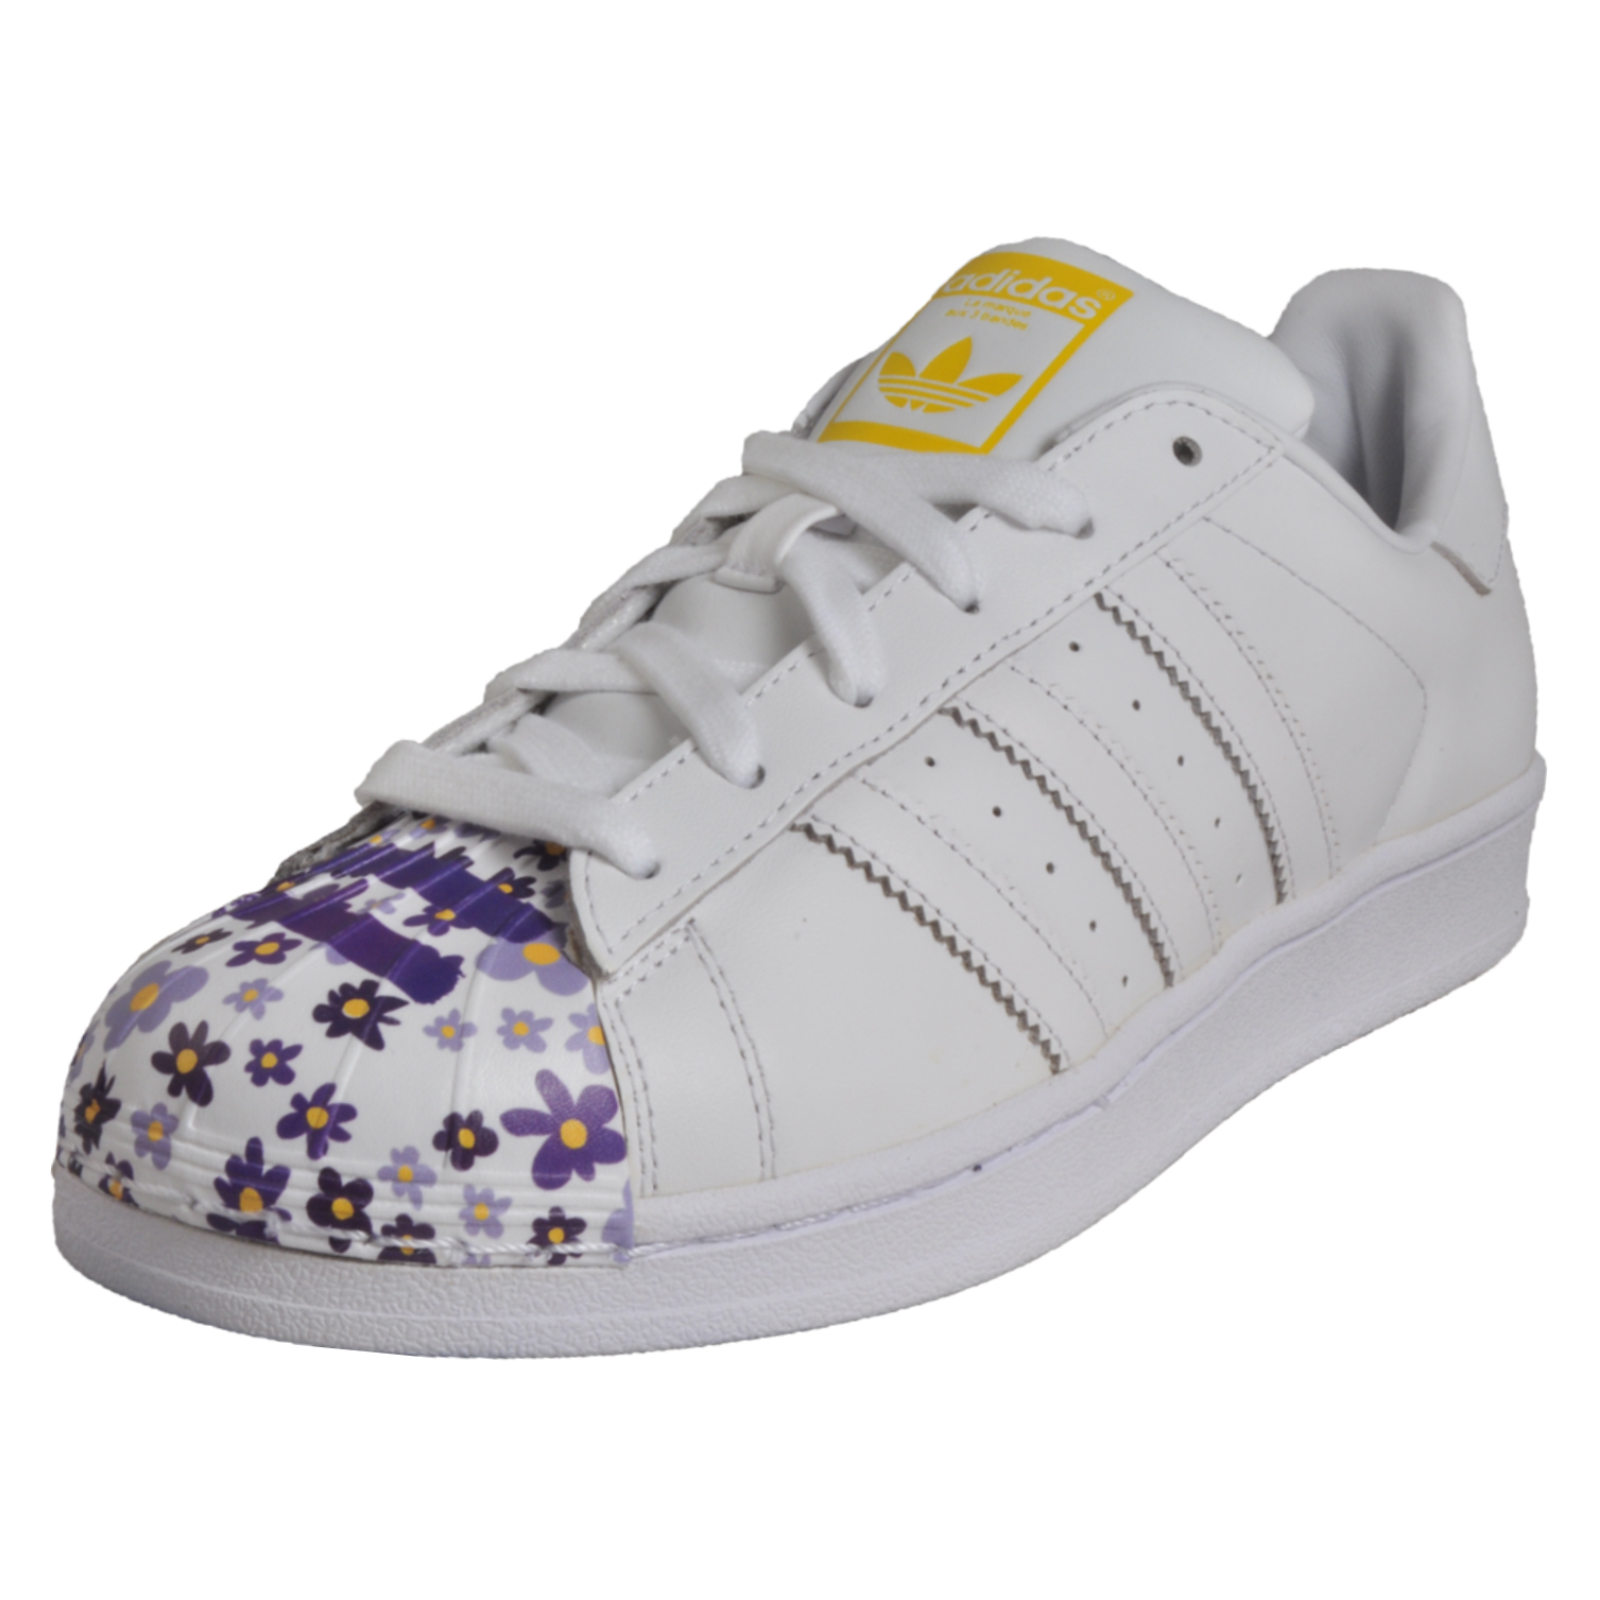 9d83b0e9c Details about Adidas Originals Superstar Pharrell Williams Men s Leather  Retro Trainers White